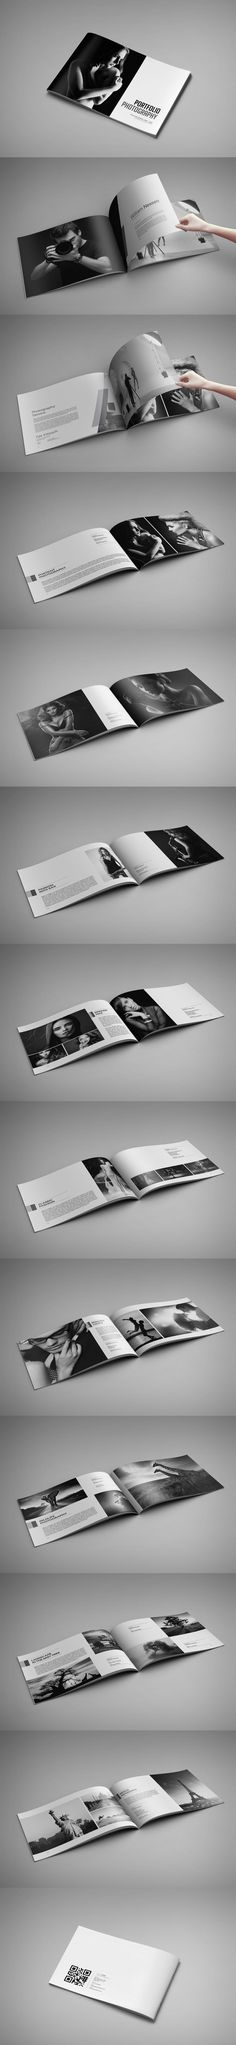 Photo Album / Portfolio Photography Brochure Template InDesign INDD - 24 Pages, A4 & US Letter Size